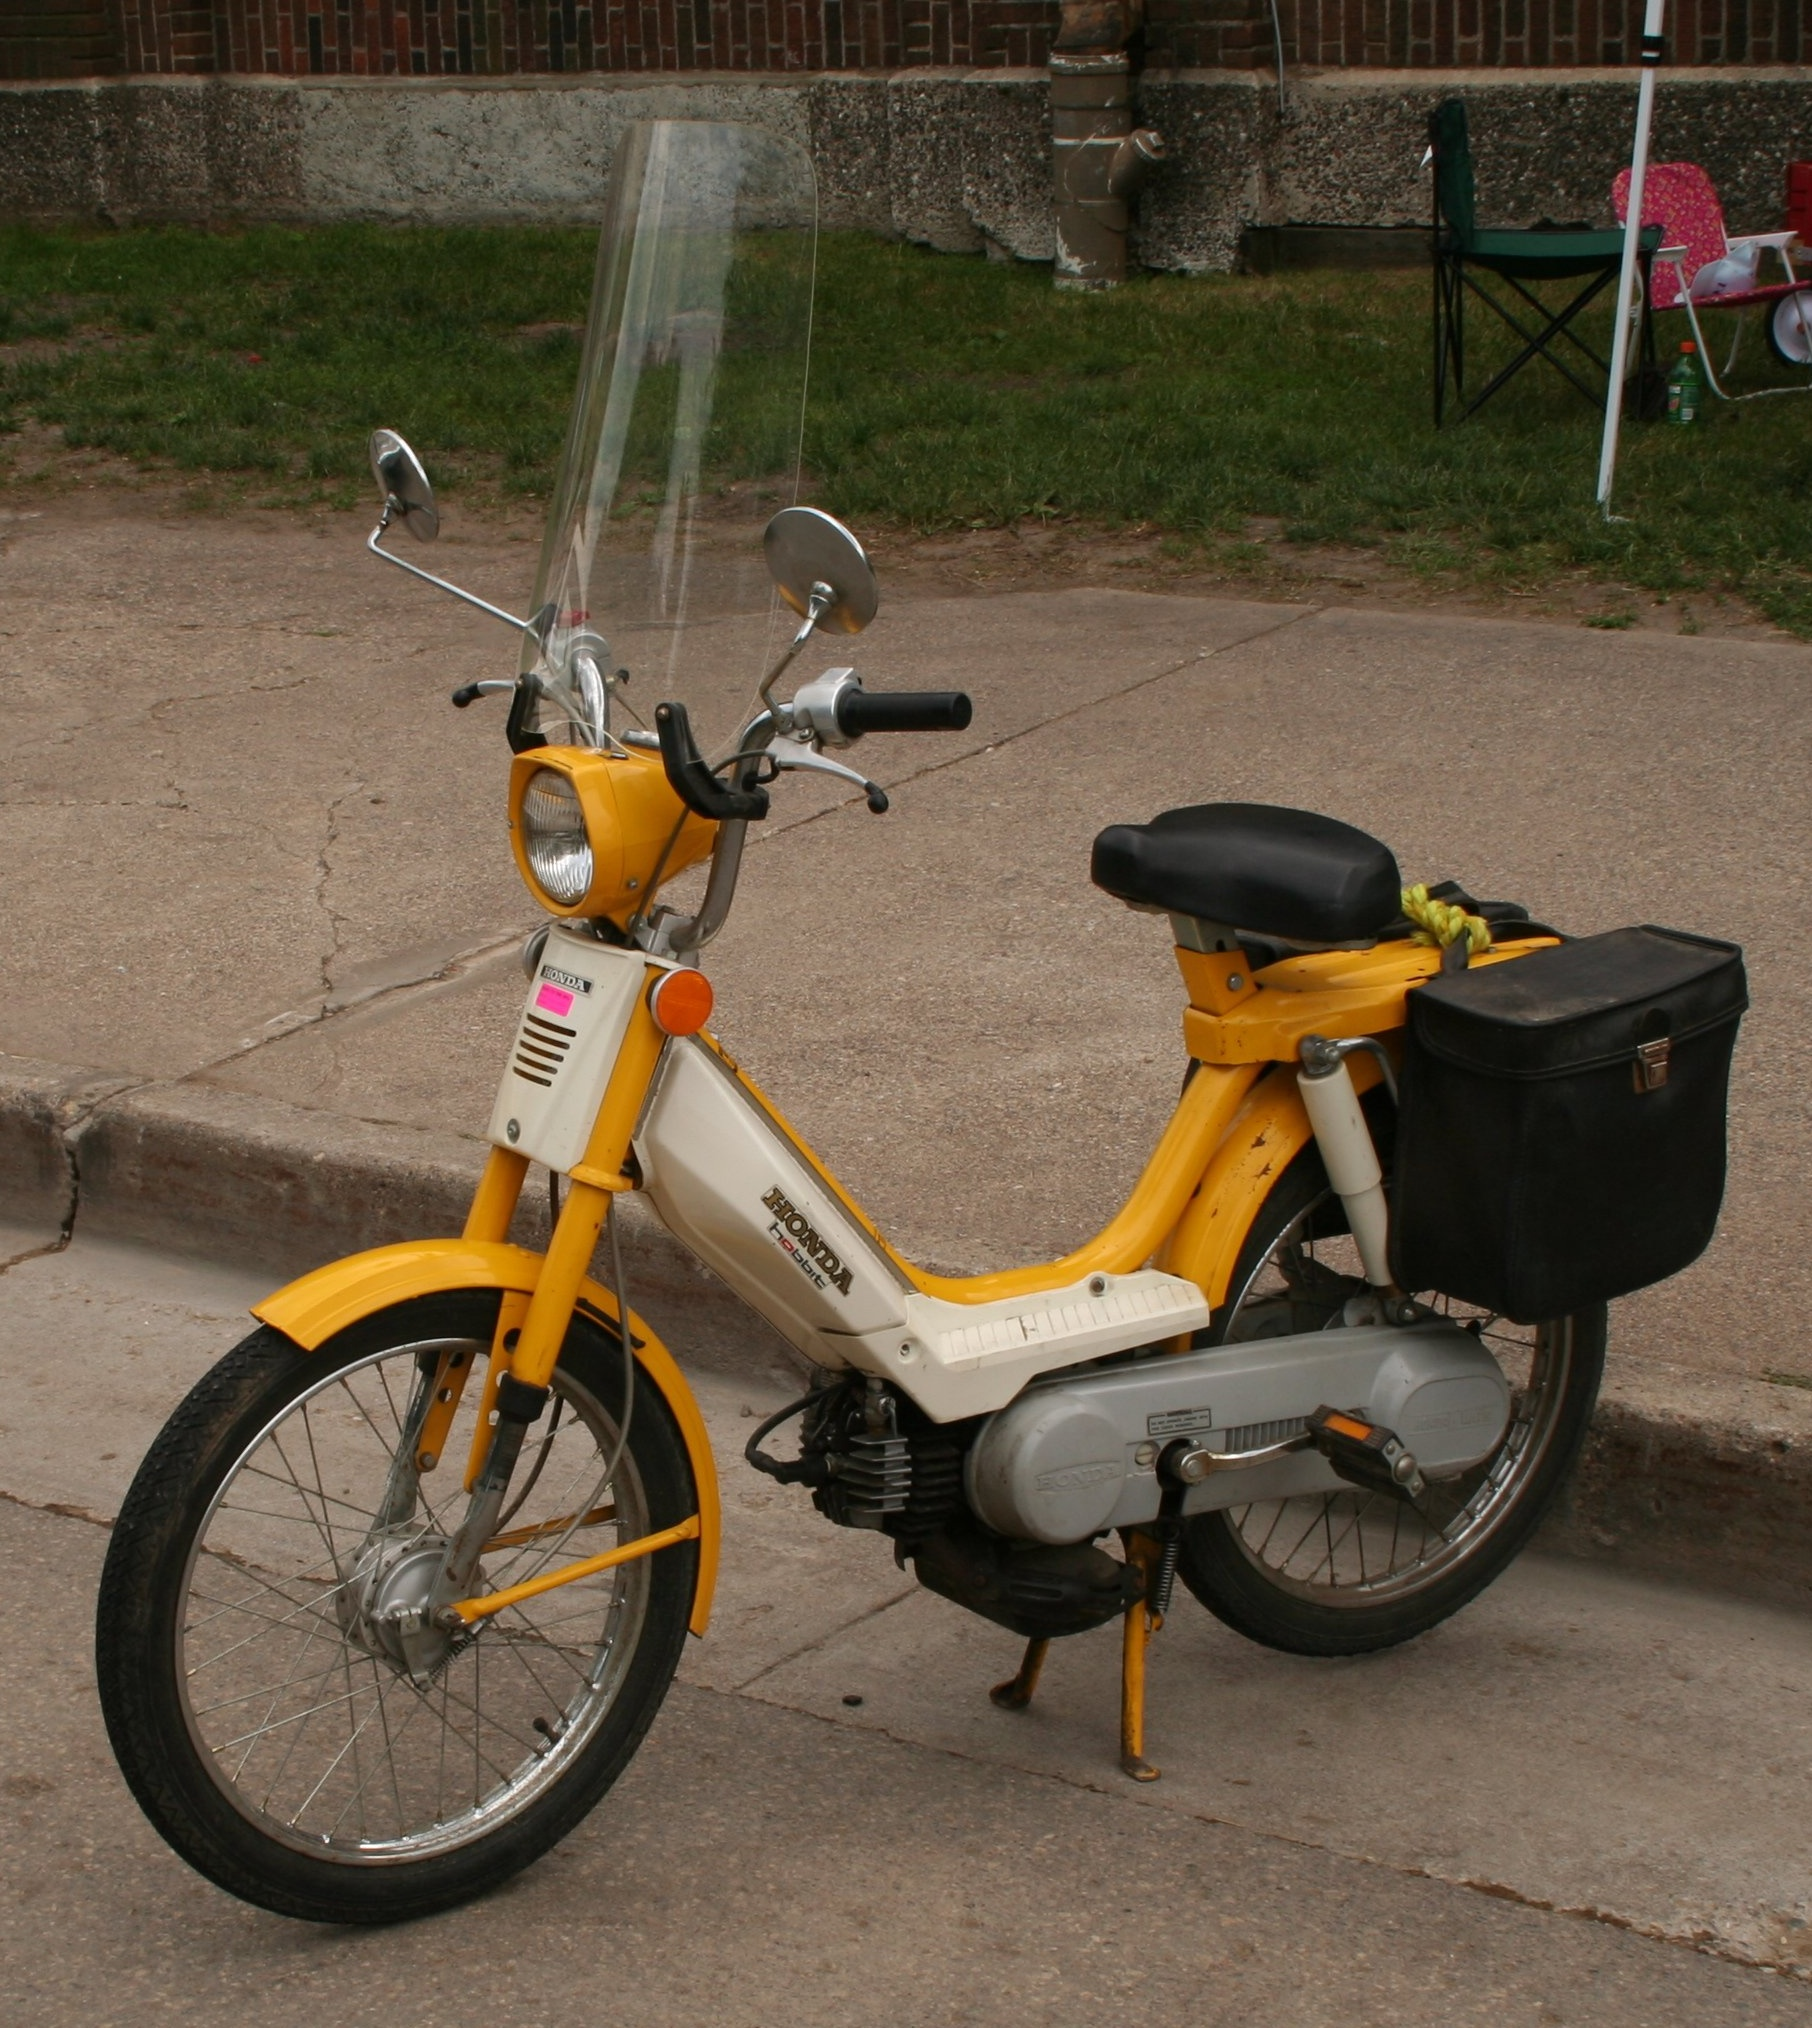 1978 Honda Hobbit Moped - Wikiwand